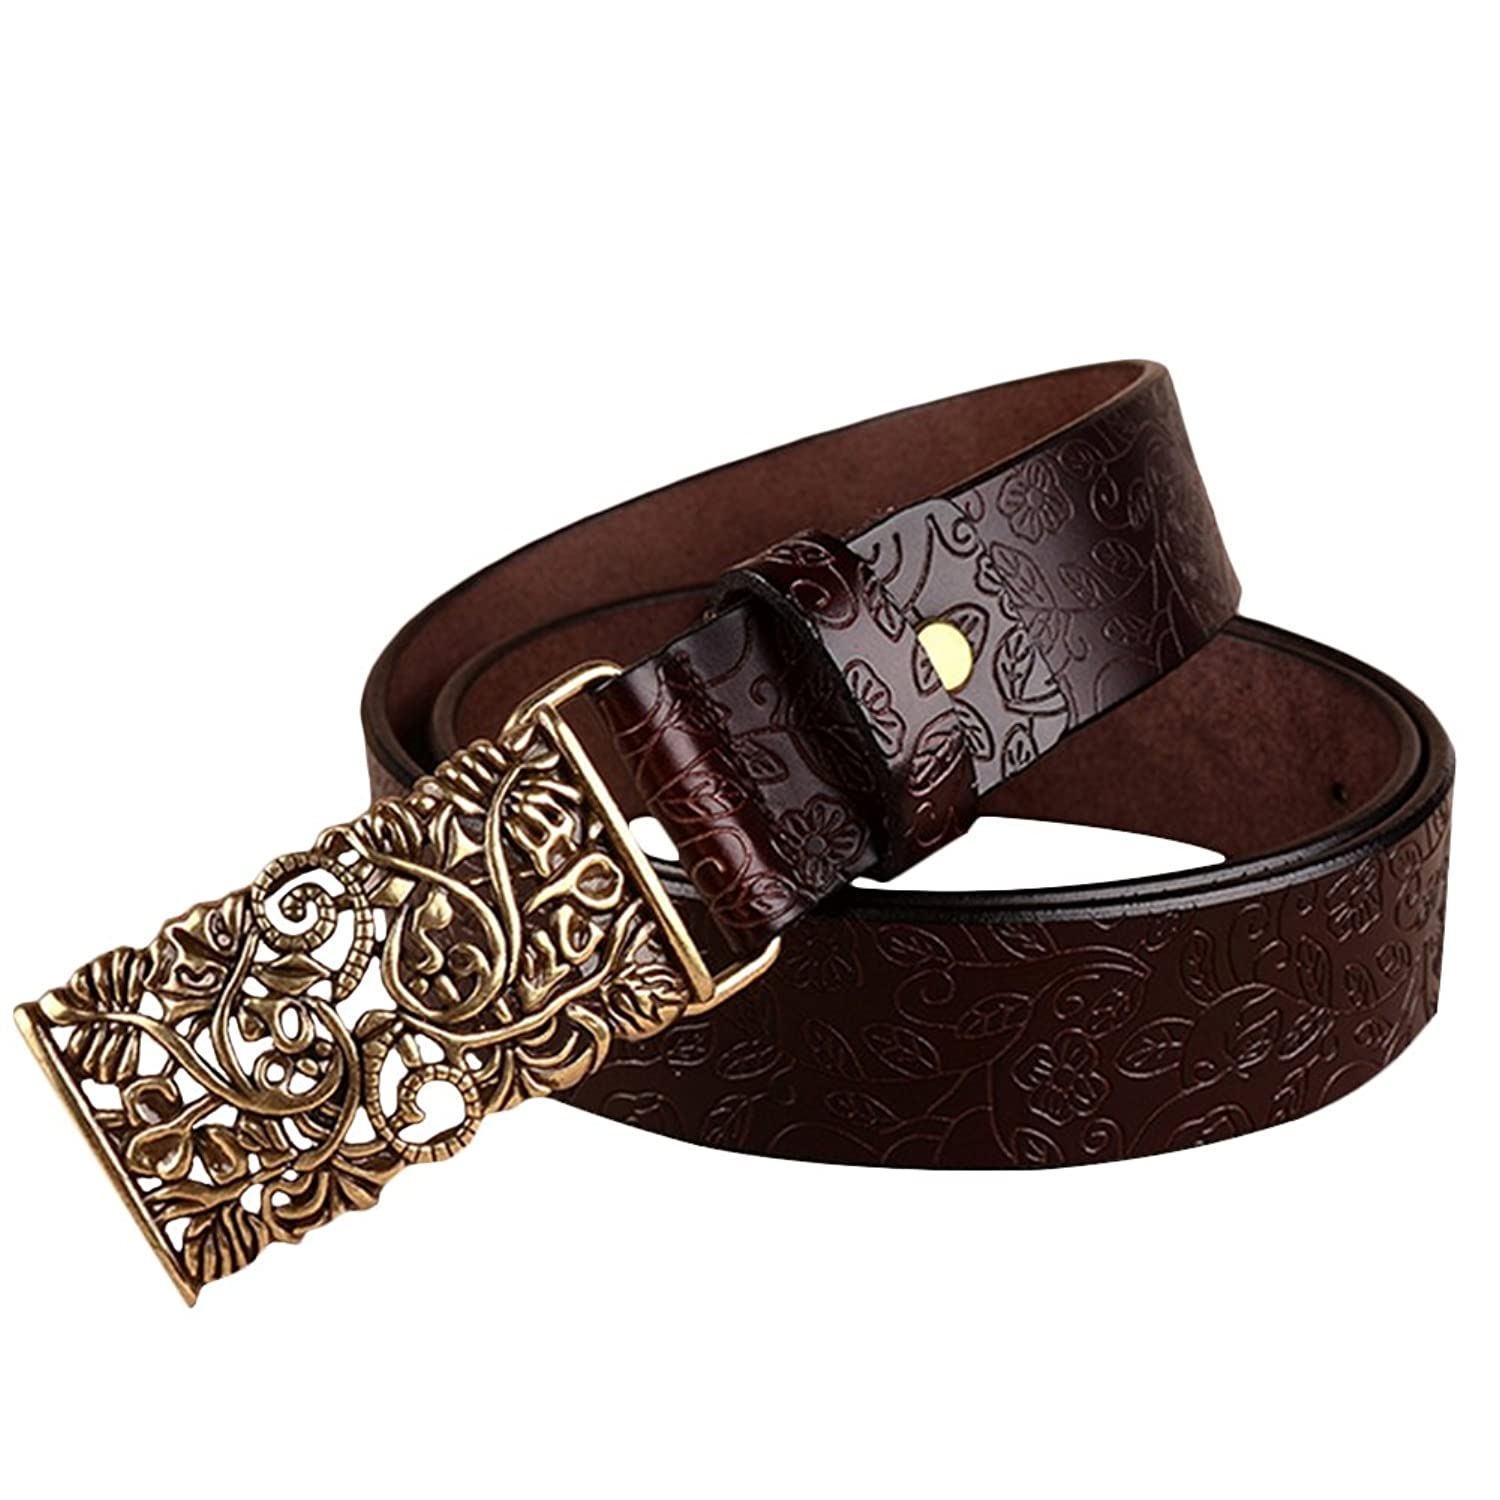 Fashion Women PU Leather Belts Vintage Belt Metal Carved Buckle Belts